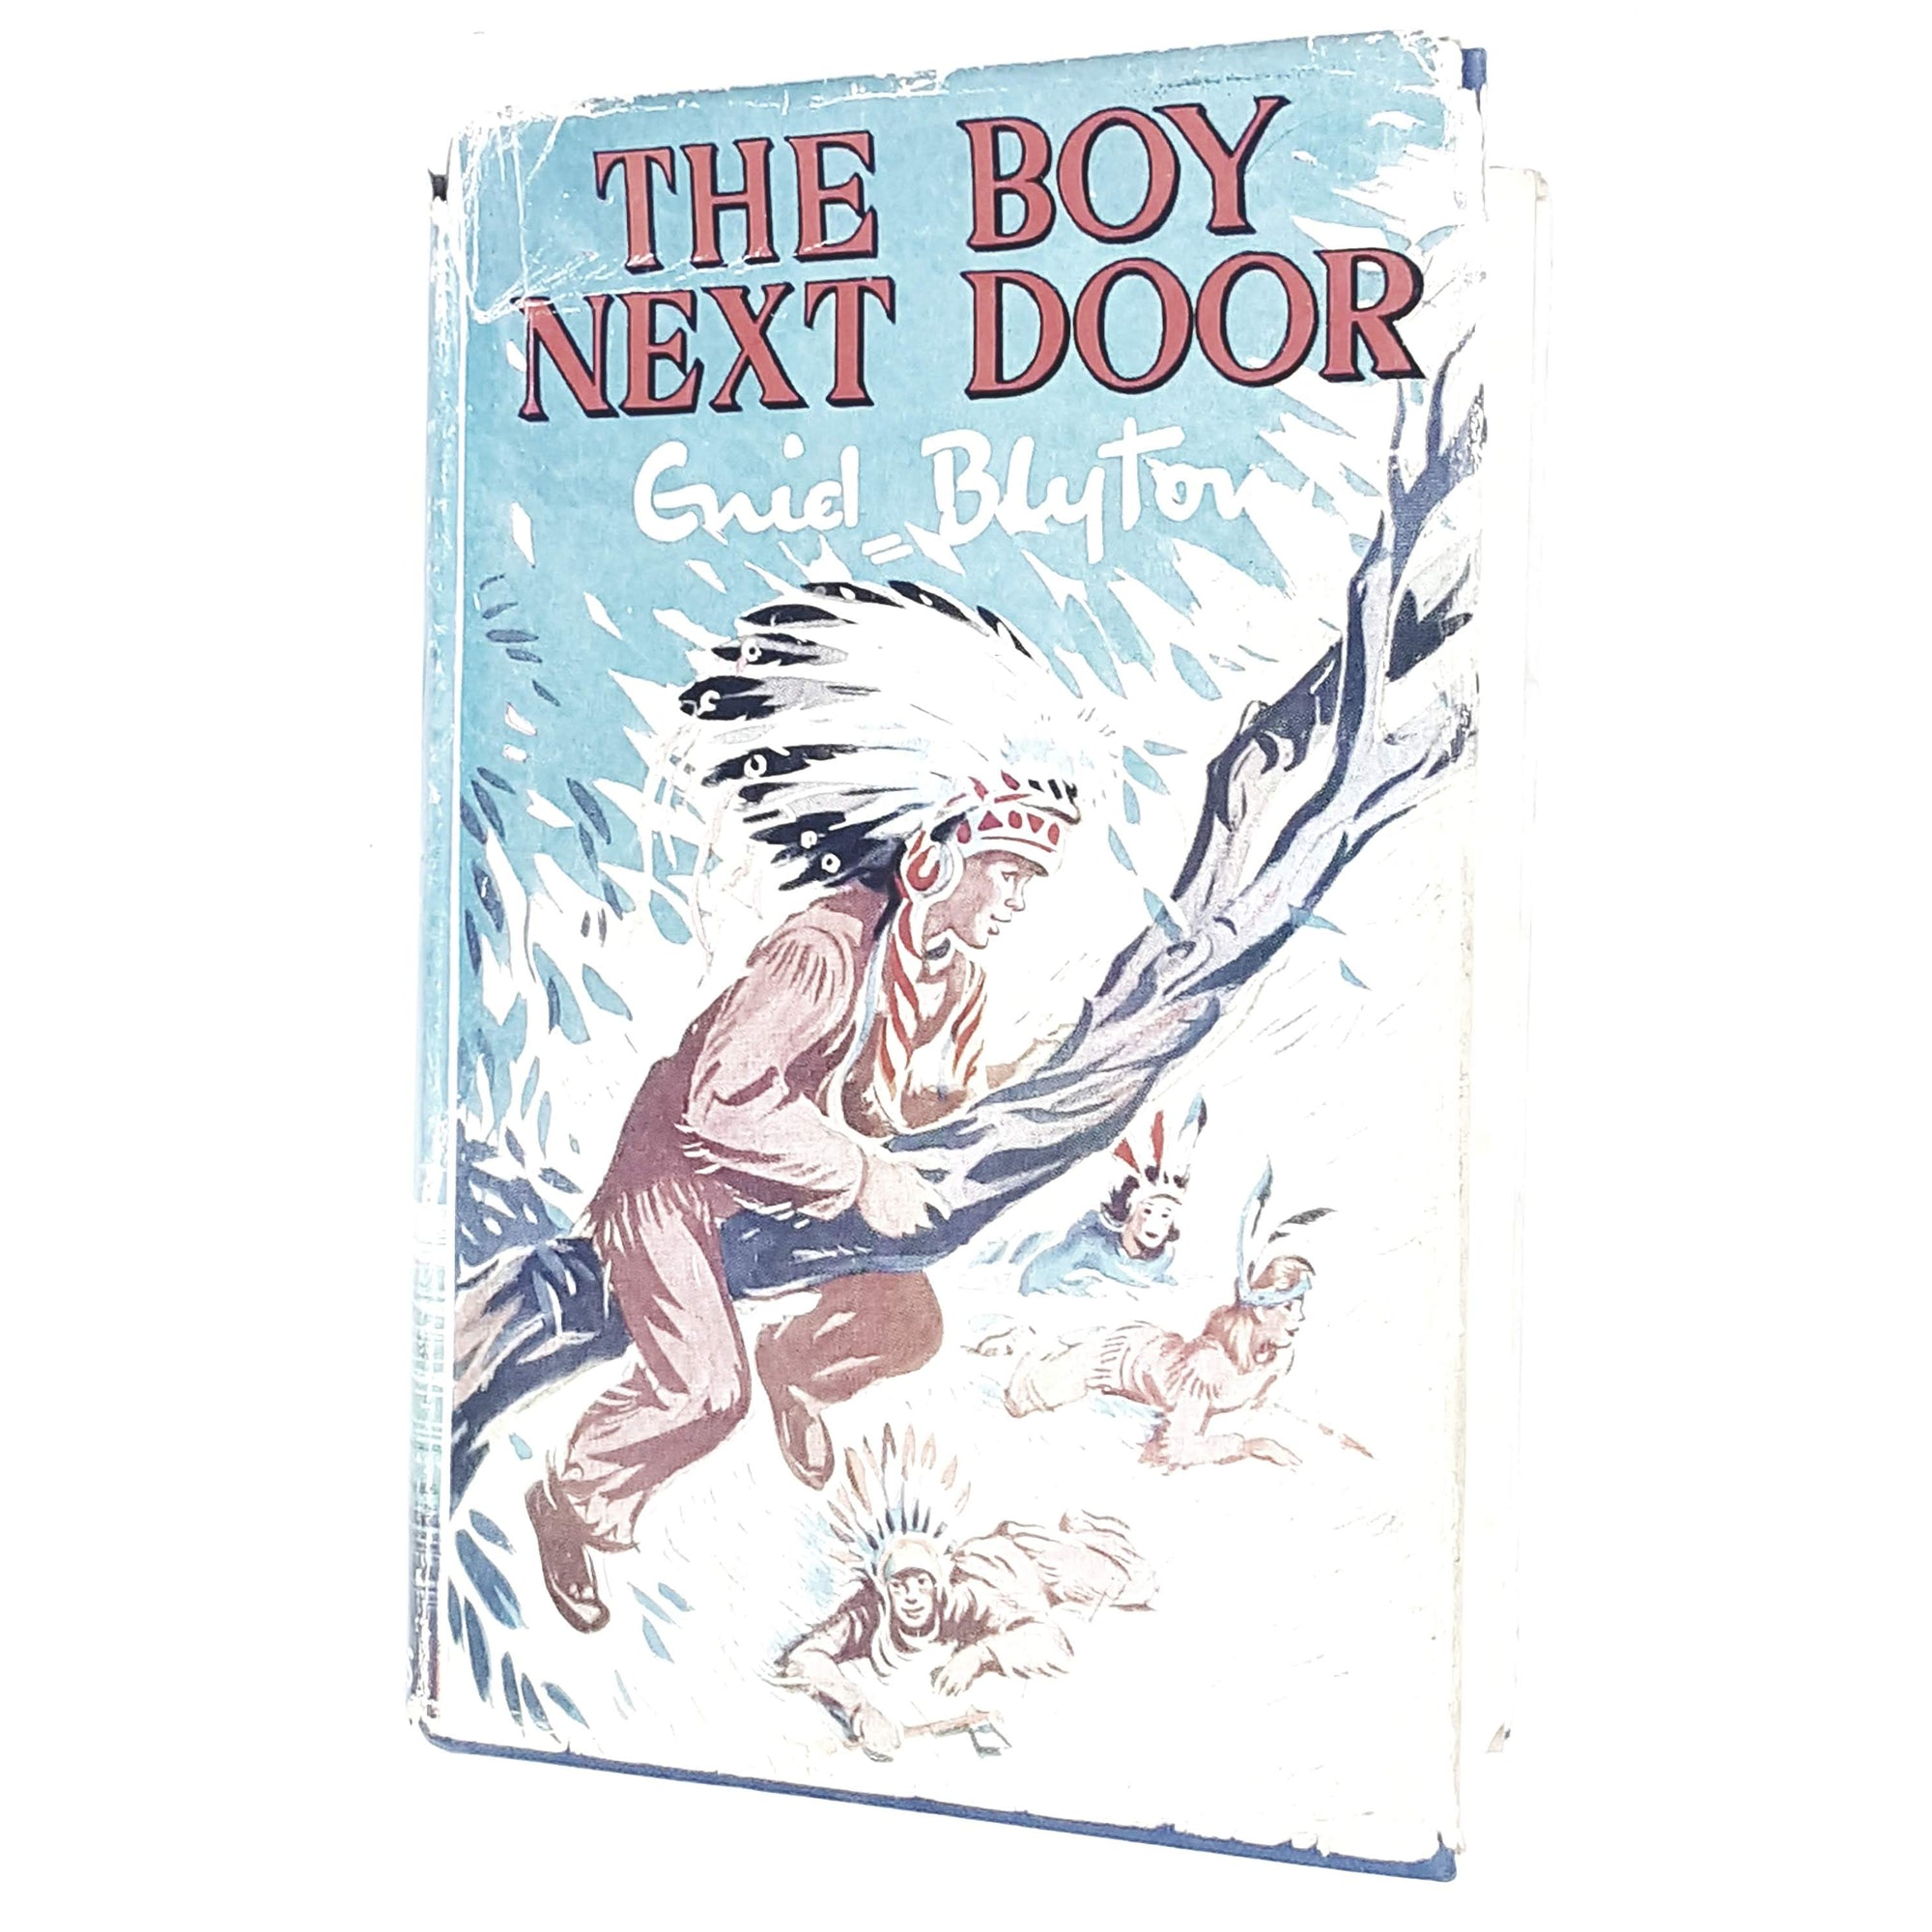 boy-next-door-enid-blyton-kids-illustrated-vintage-book-country-library-book